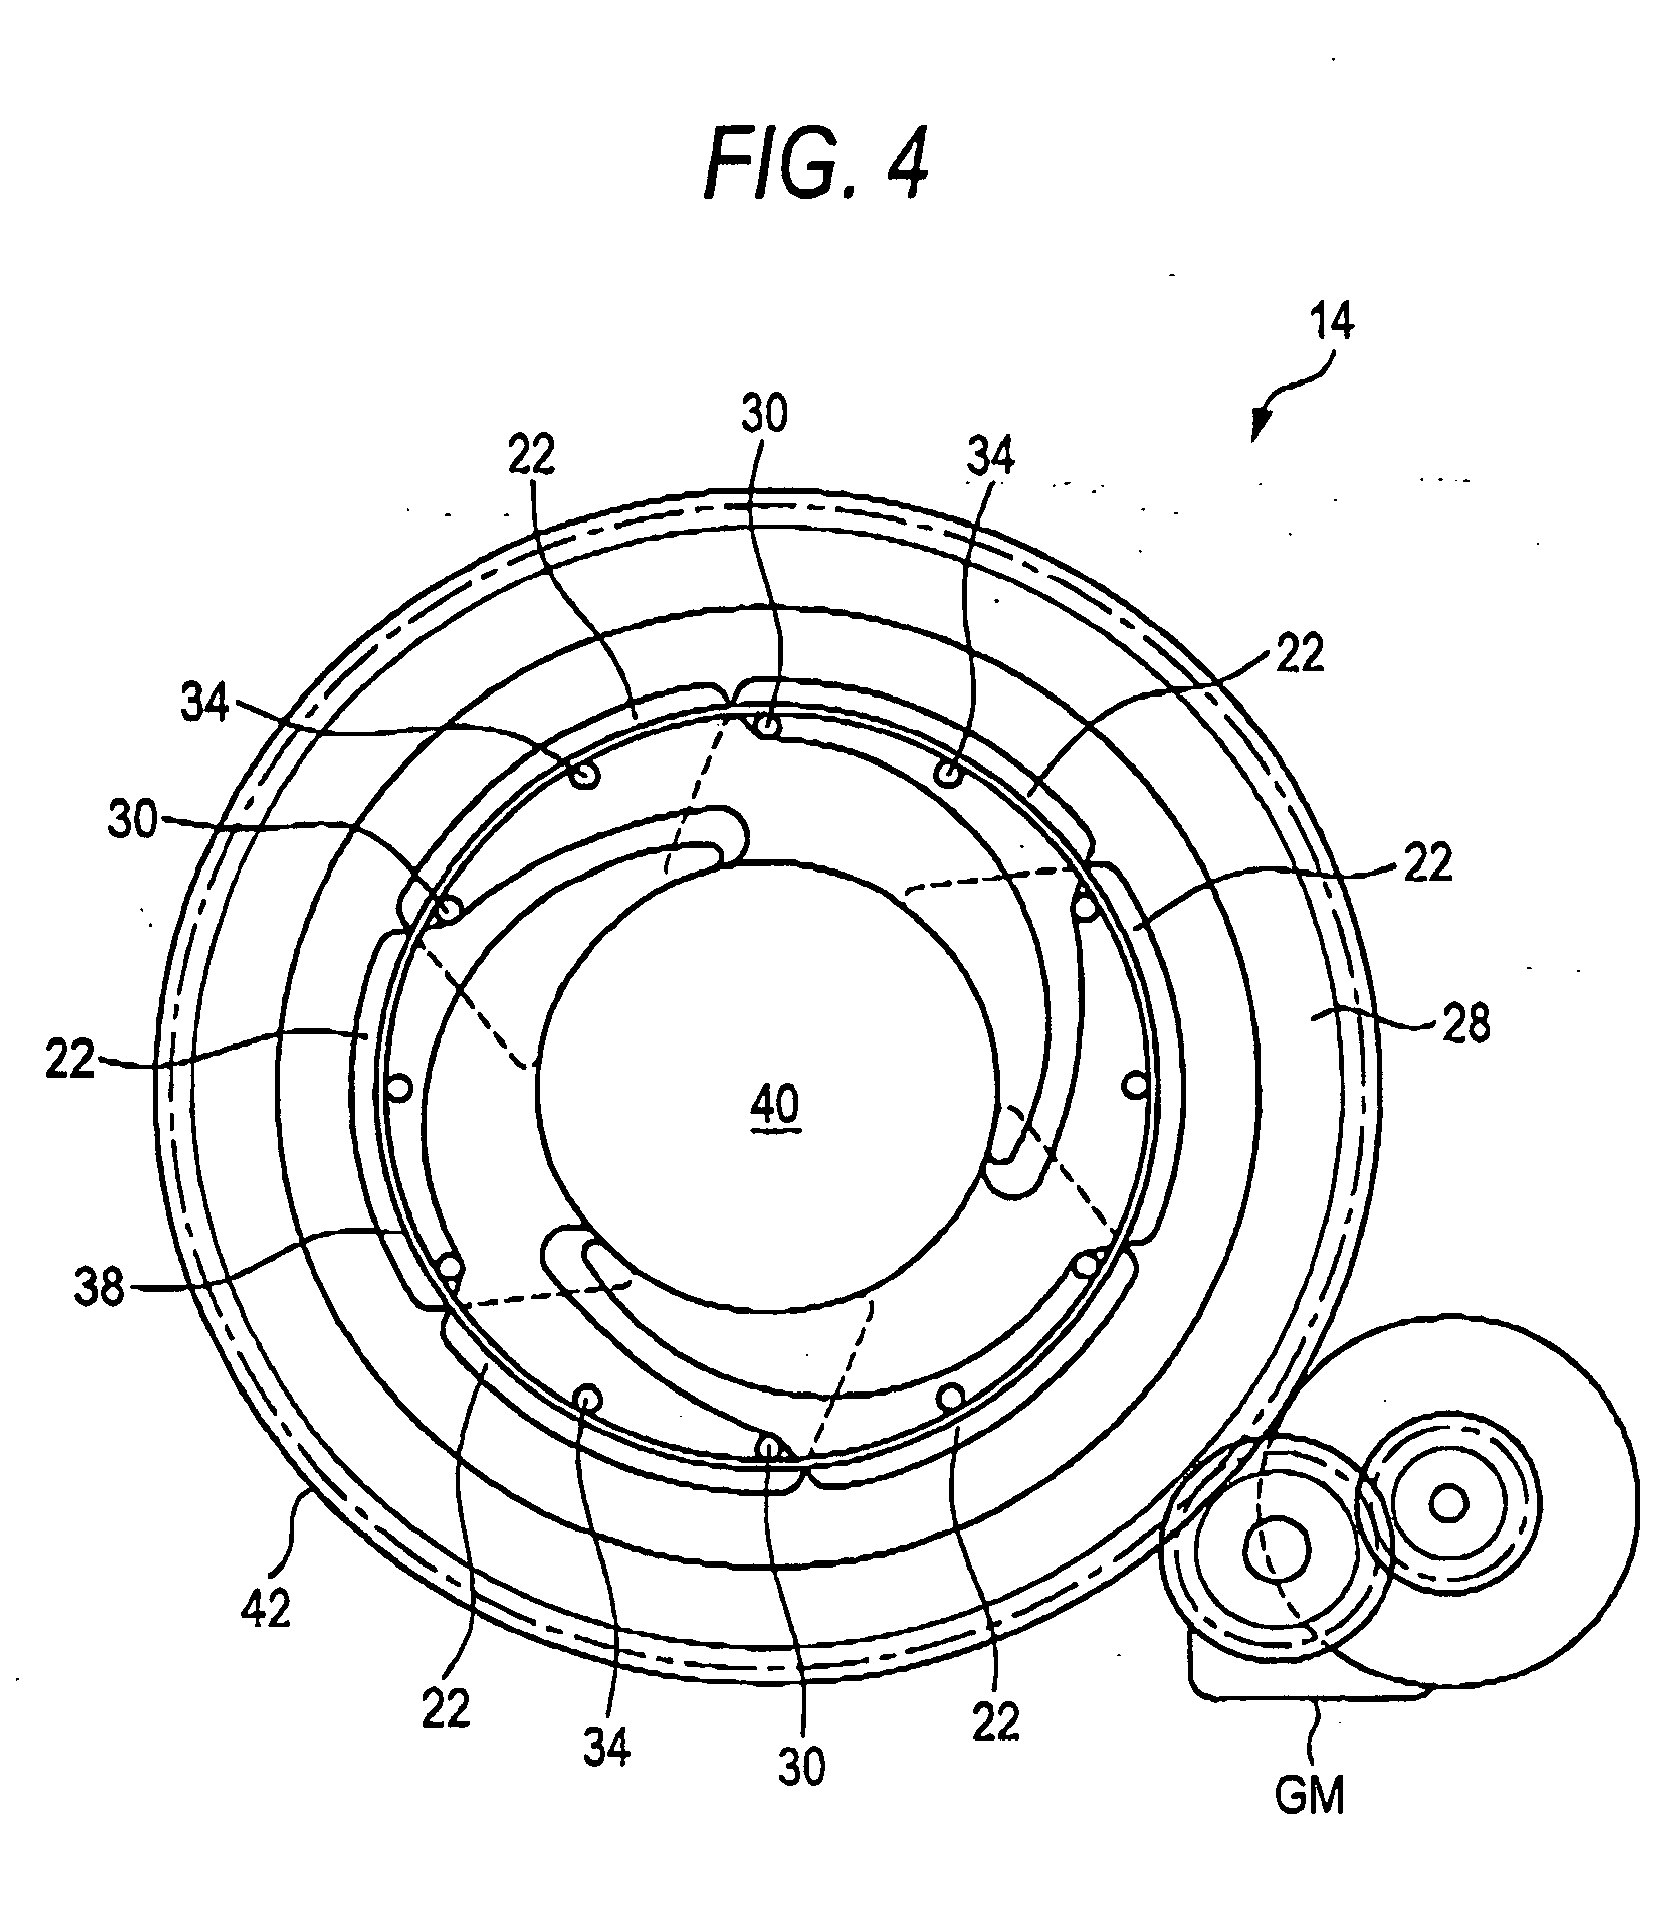 Lens Drawing At Free For Personal Use Camera Diagram Ray Of Photo Album Wire 1677x1913 Patent Ep1841212a1